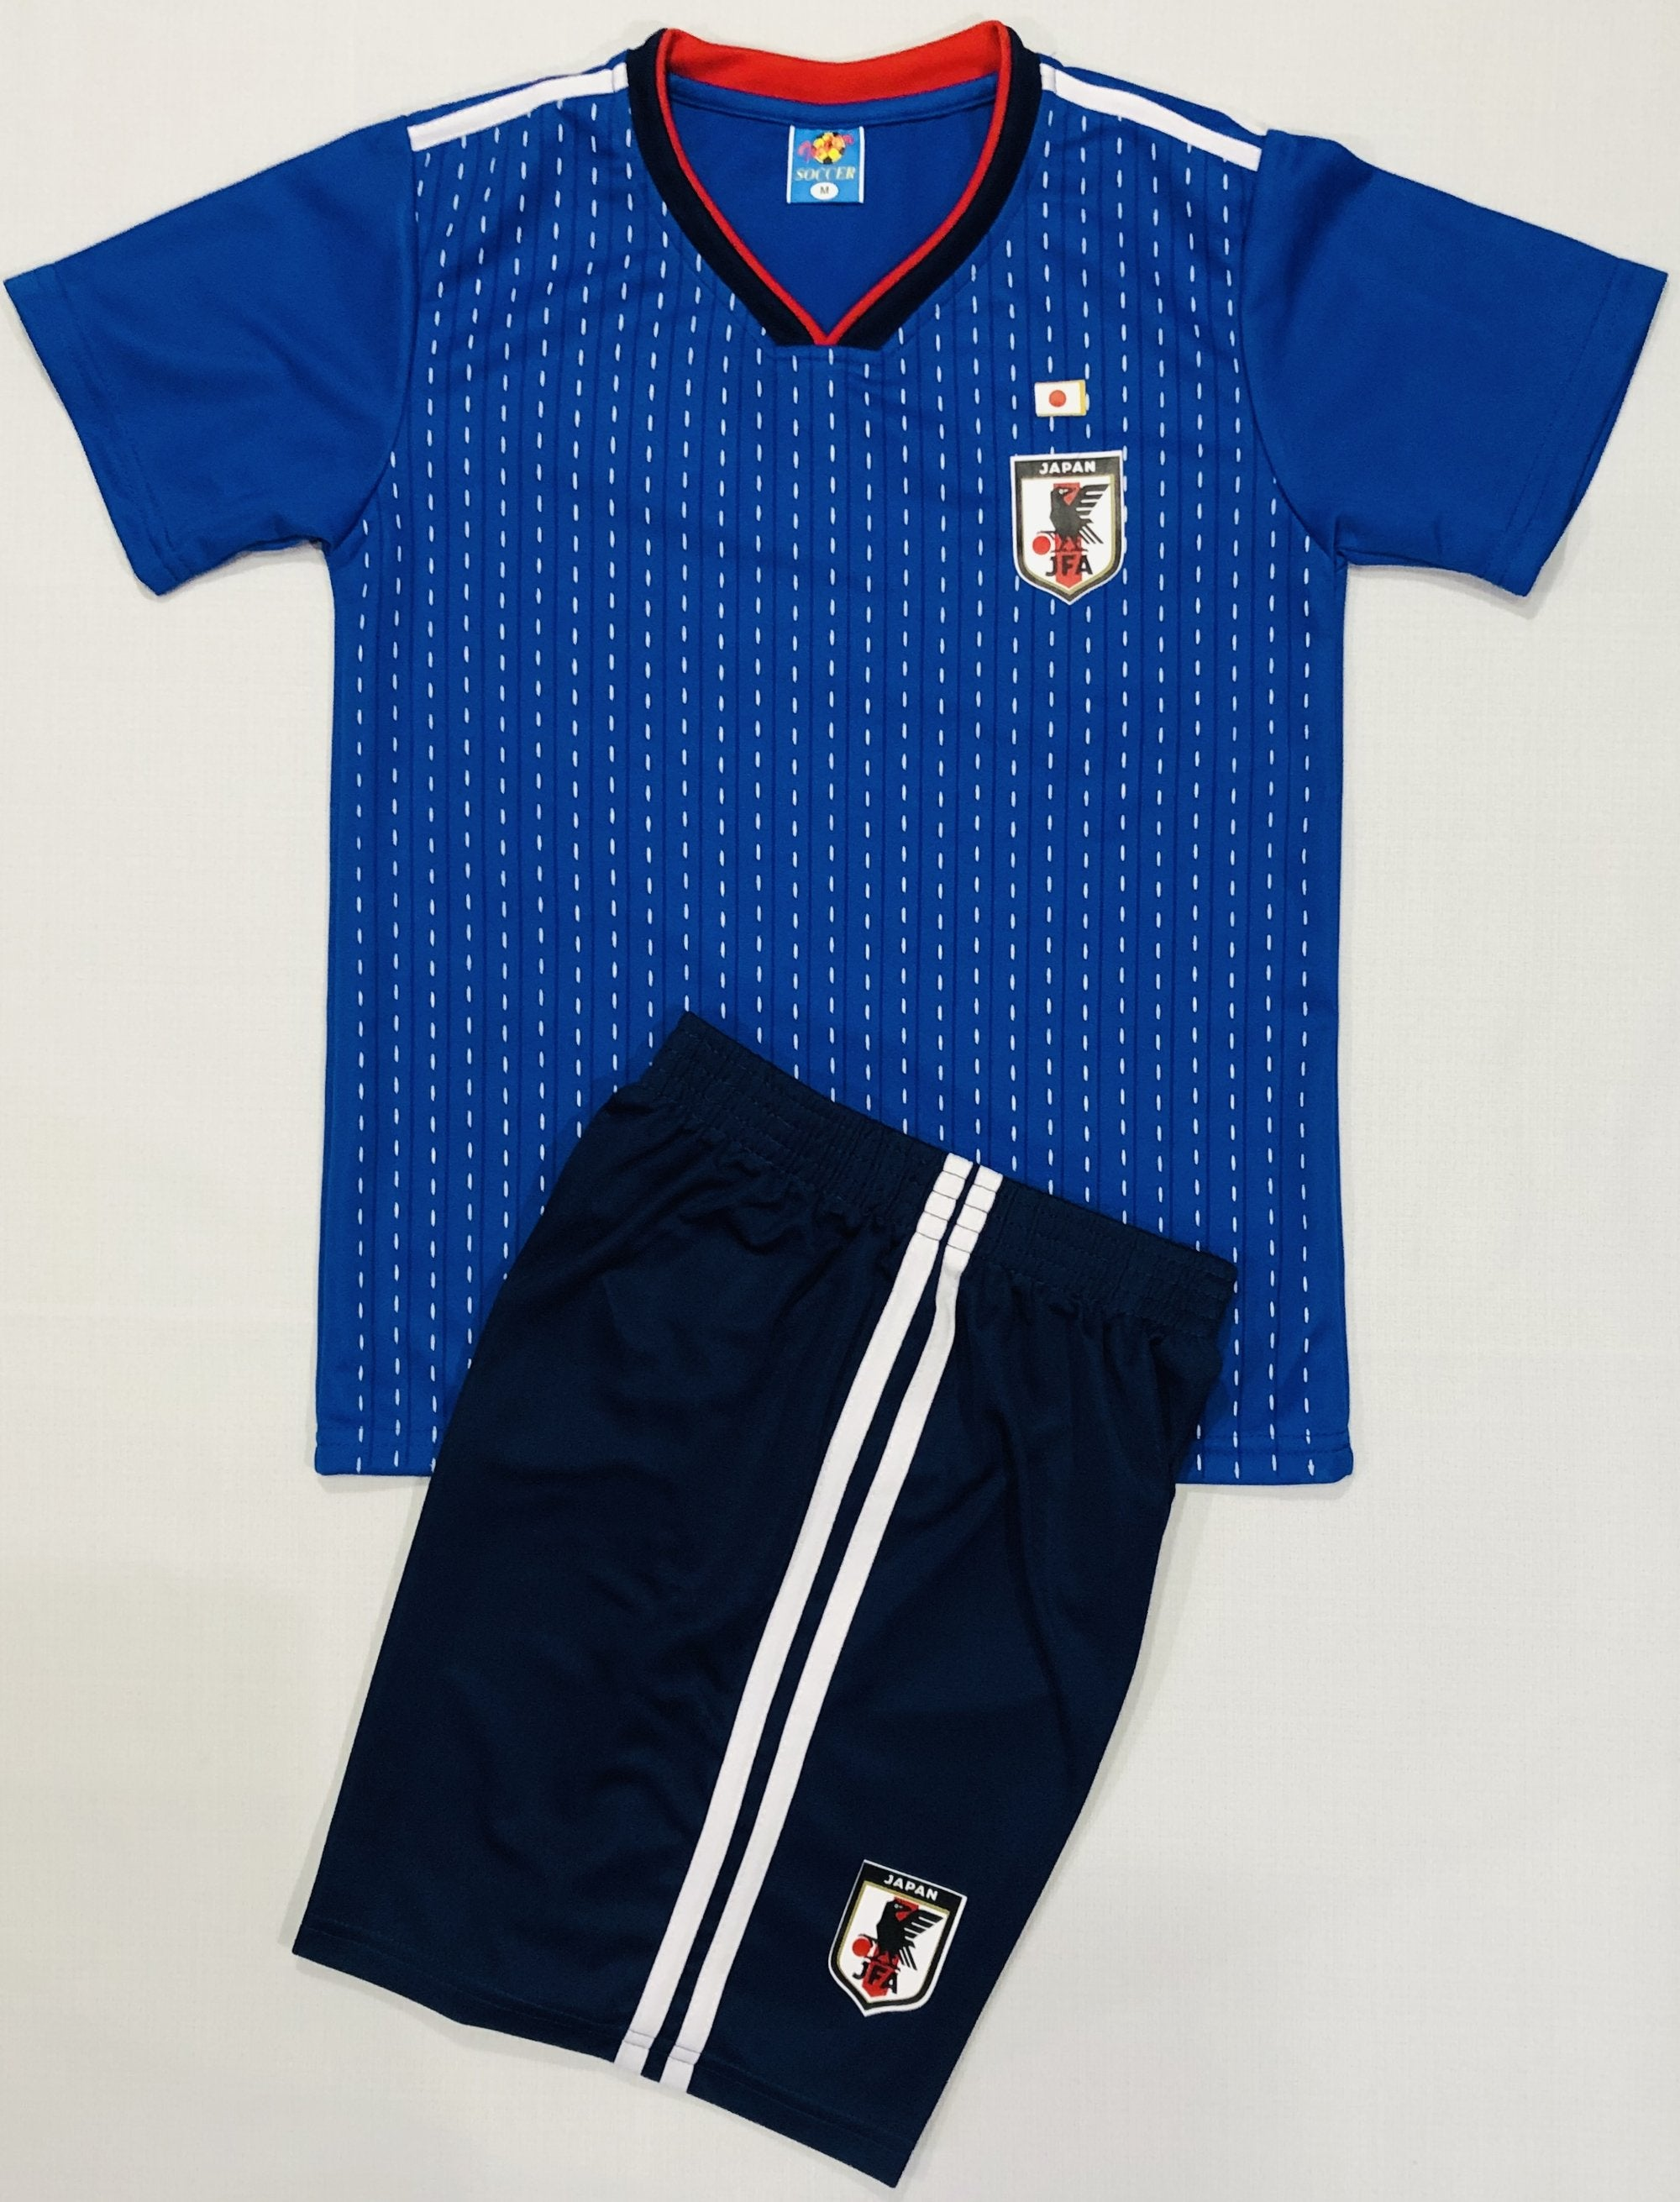 JAPAN HOME WORLD CUP 2018 KIDS 2-PIECE SOCCER SET